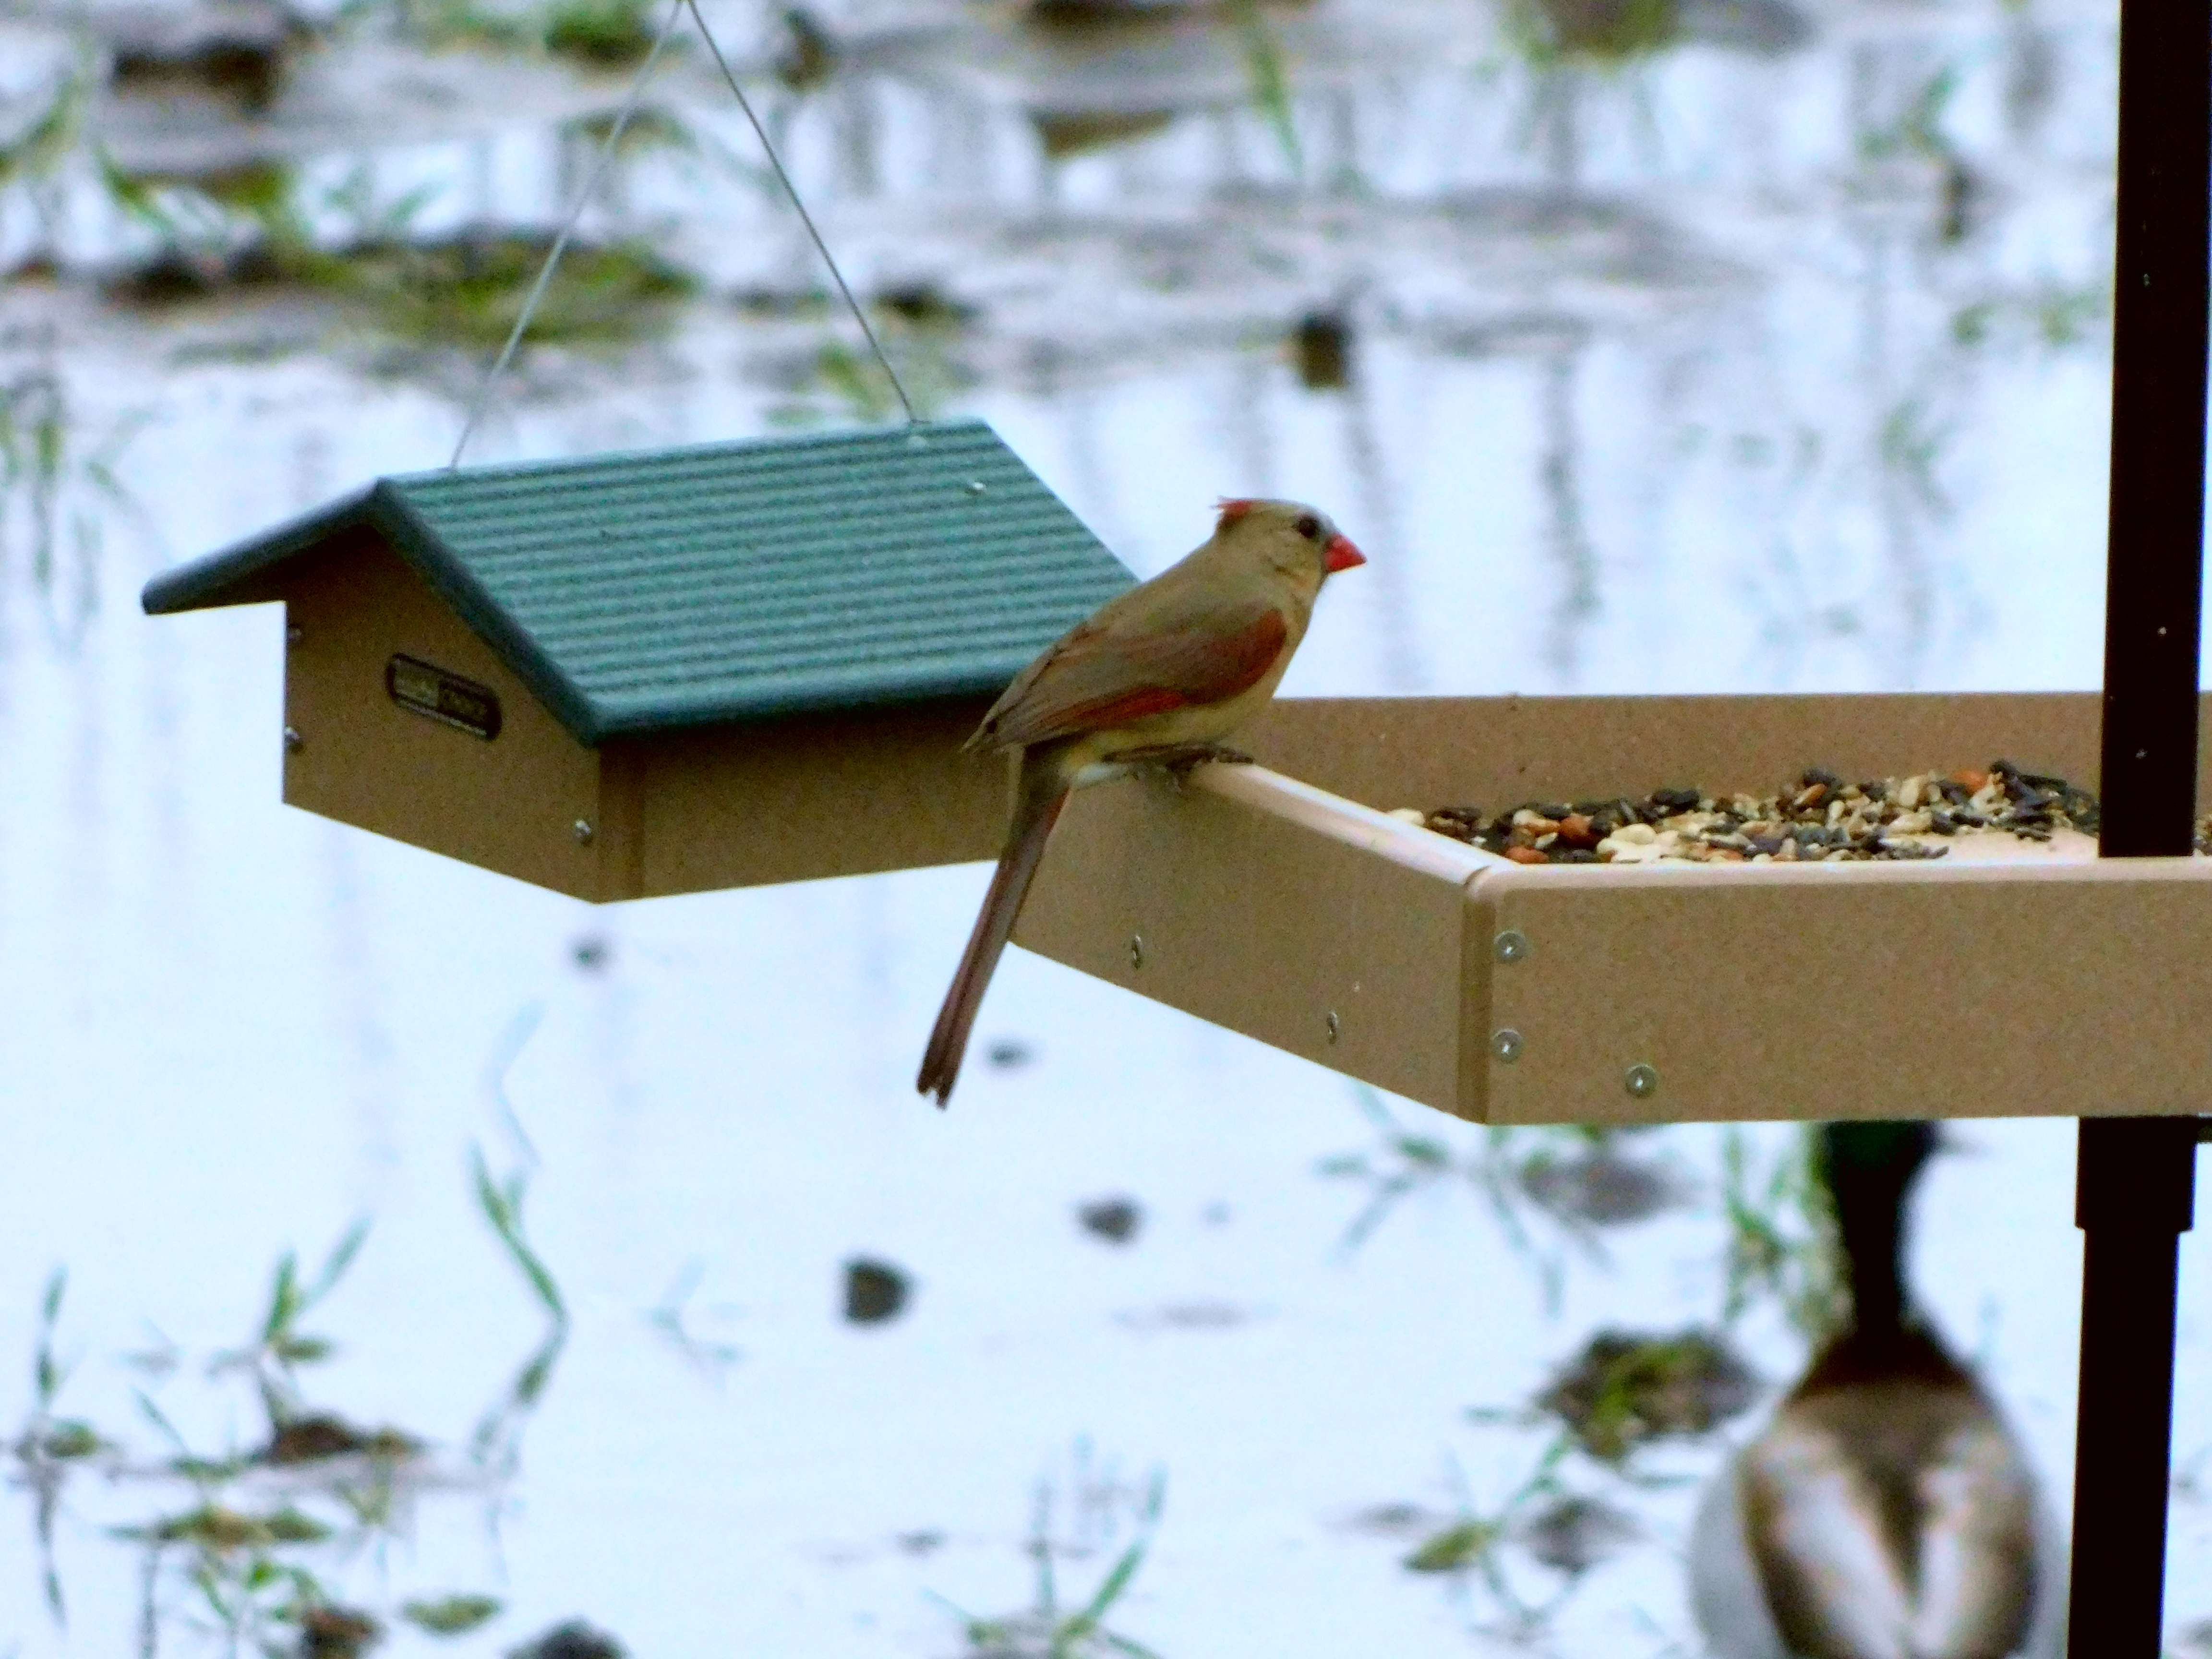 Female Nothern Cardinal at feeder